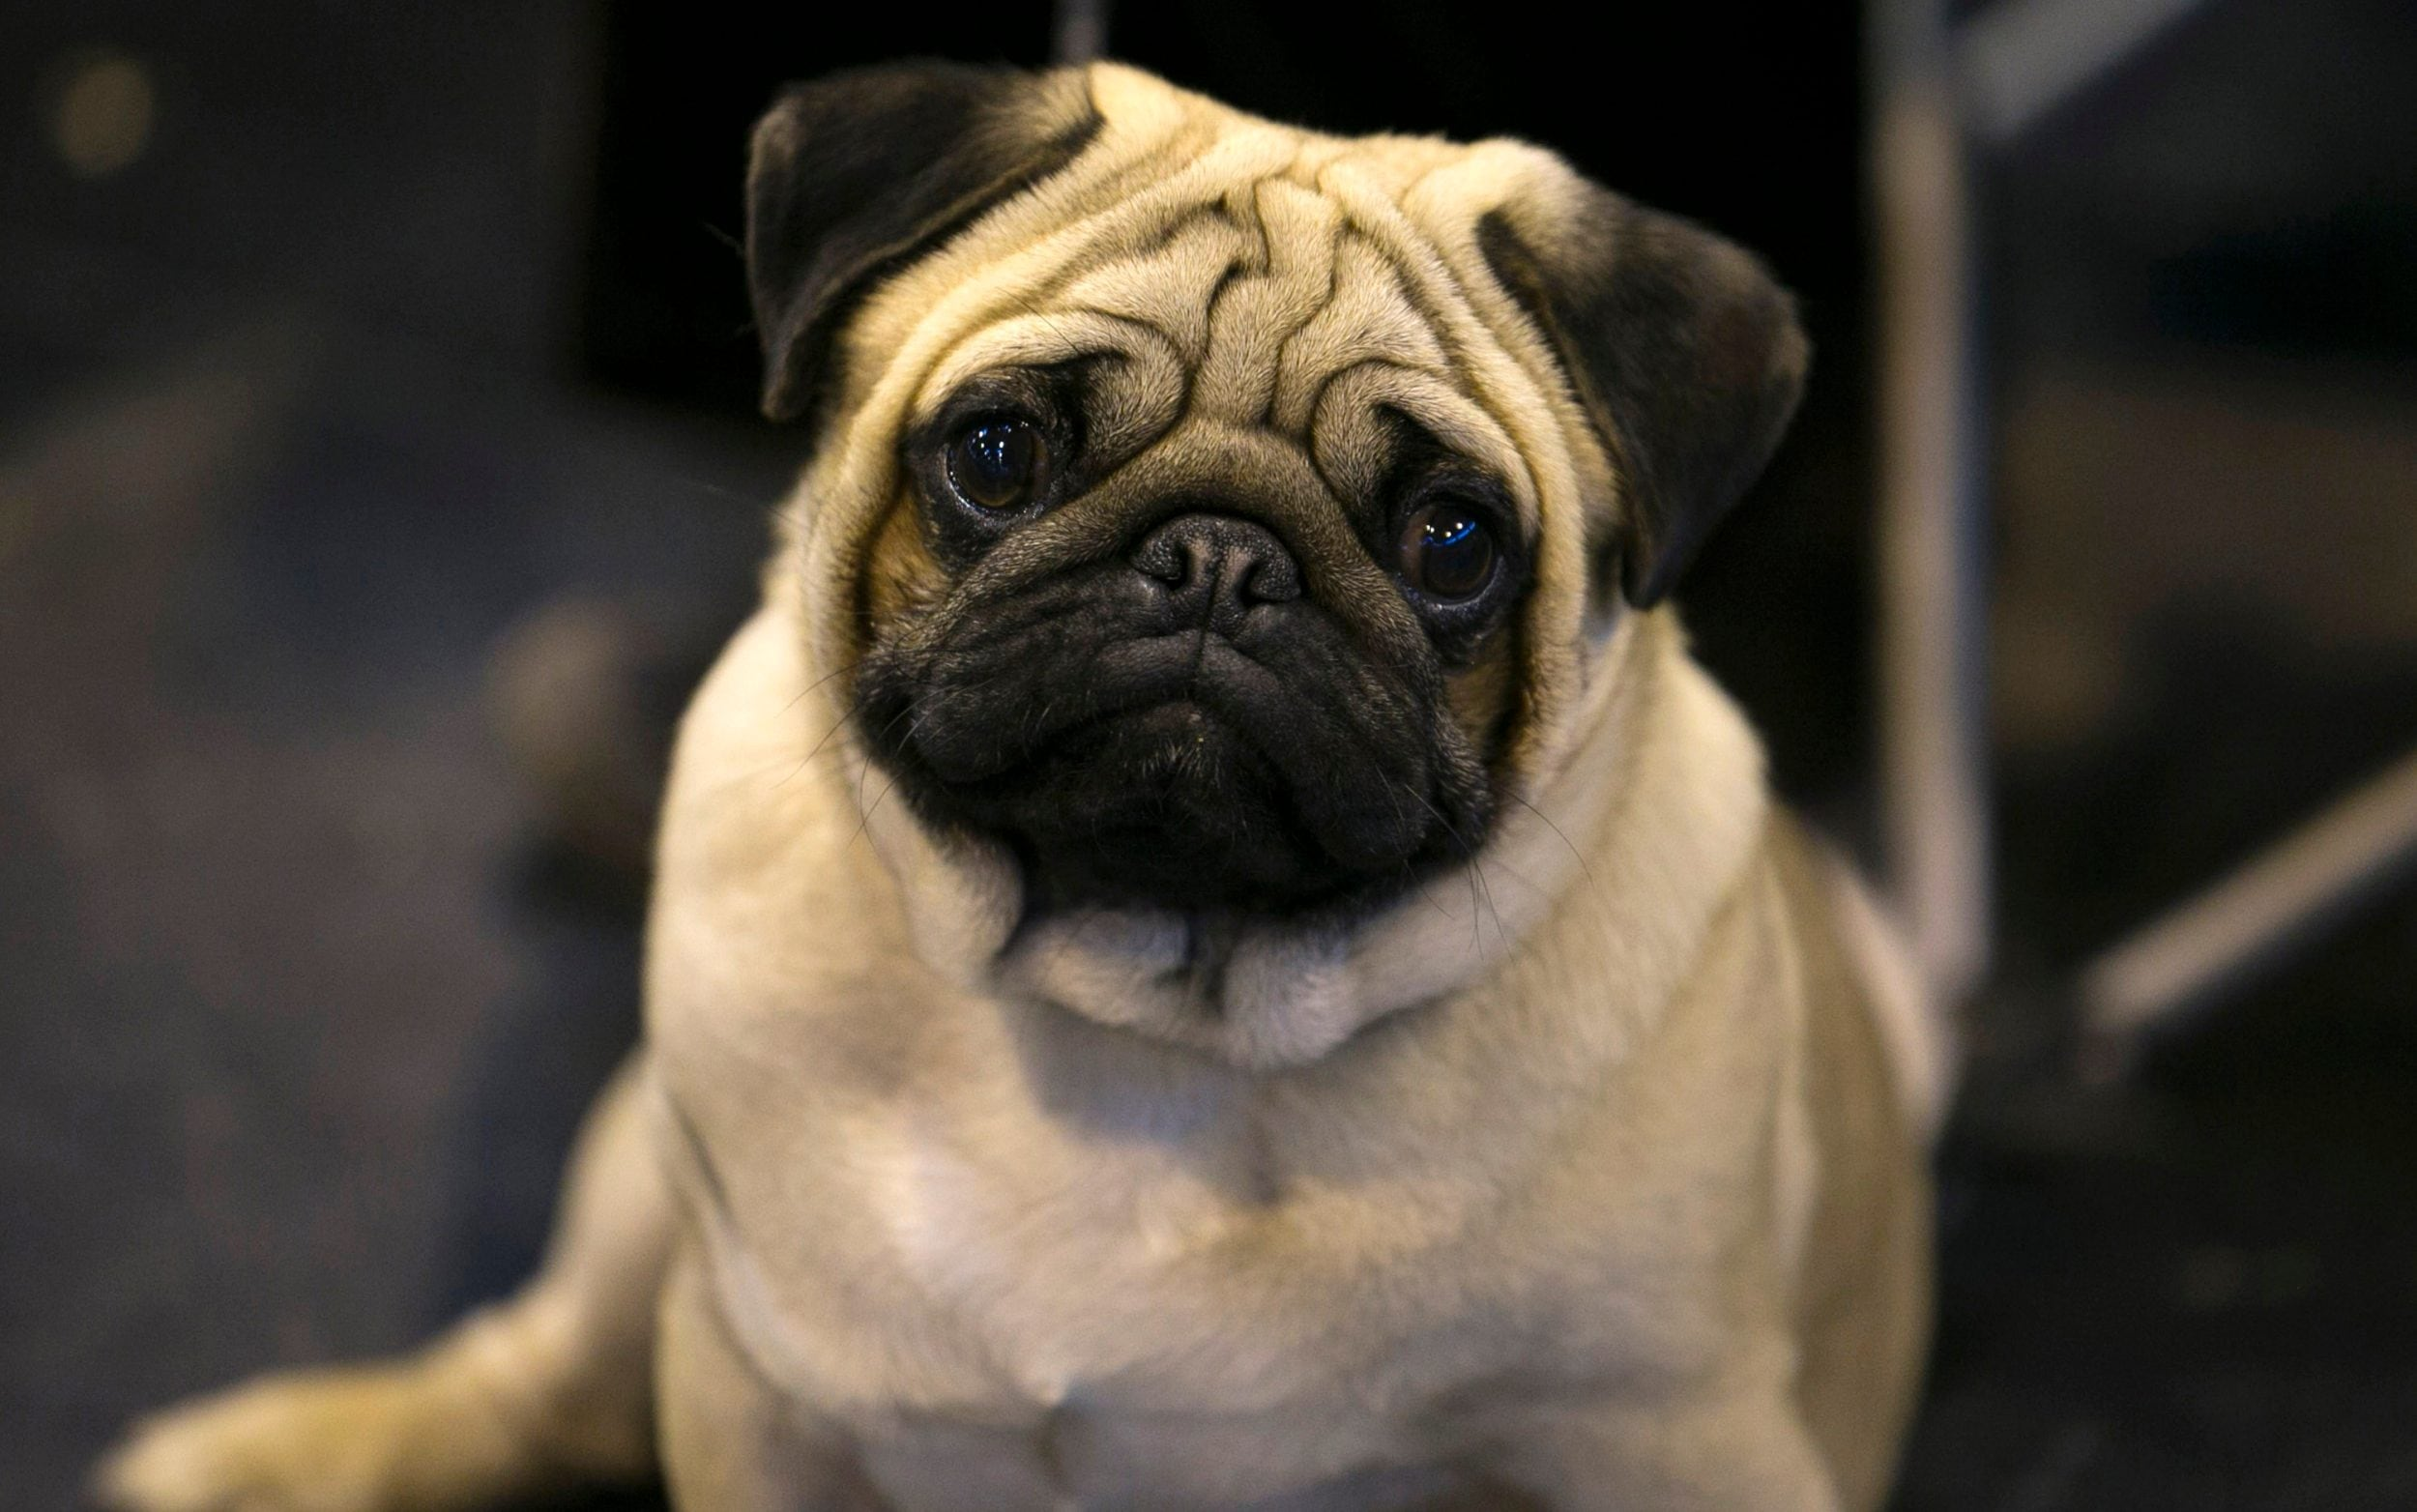 Cute Dogs And Puppies Wallpaper For Mobile Should Pugs And Bulldogs Be Banned It Might Be The Only